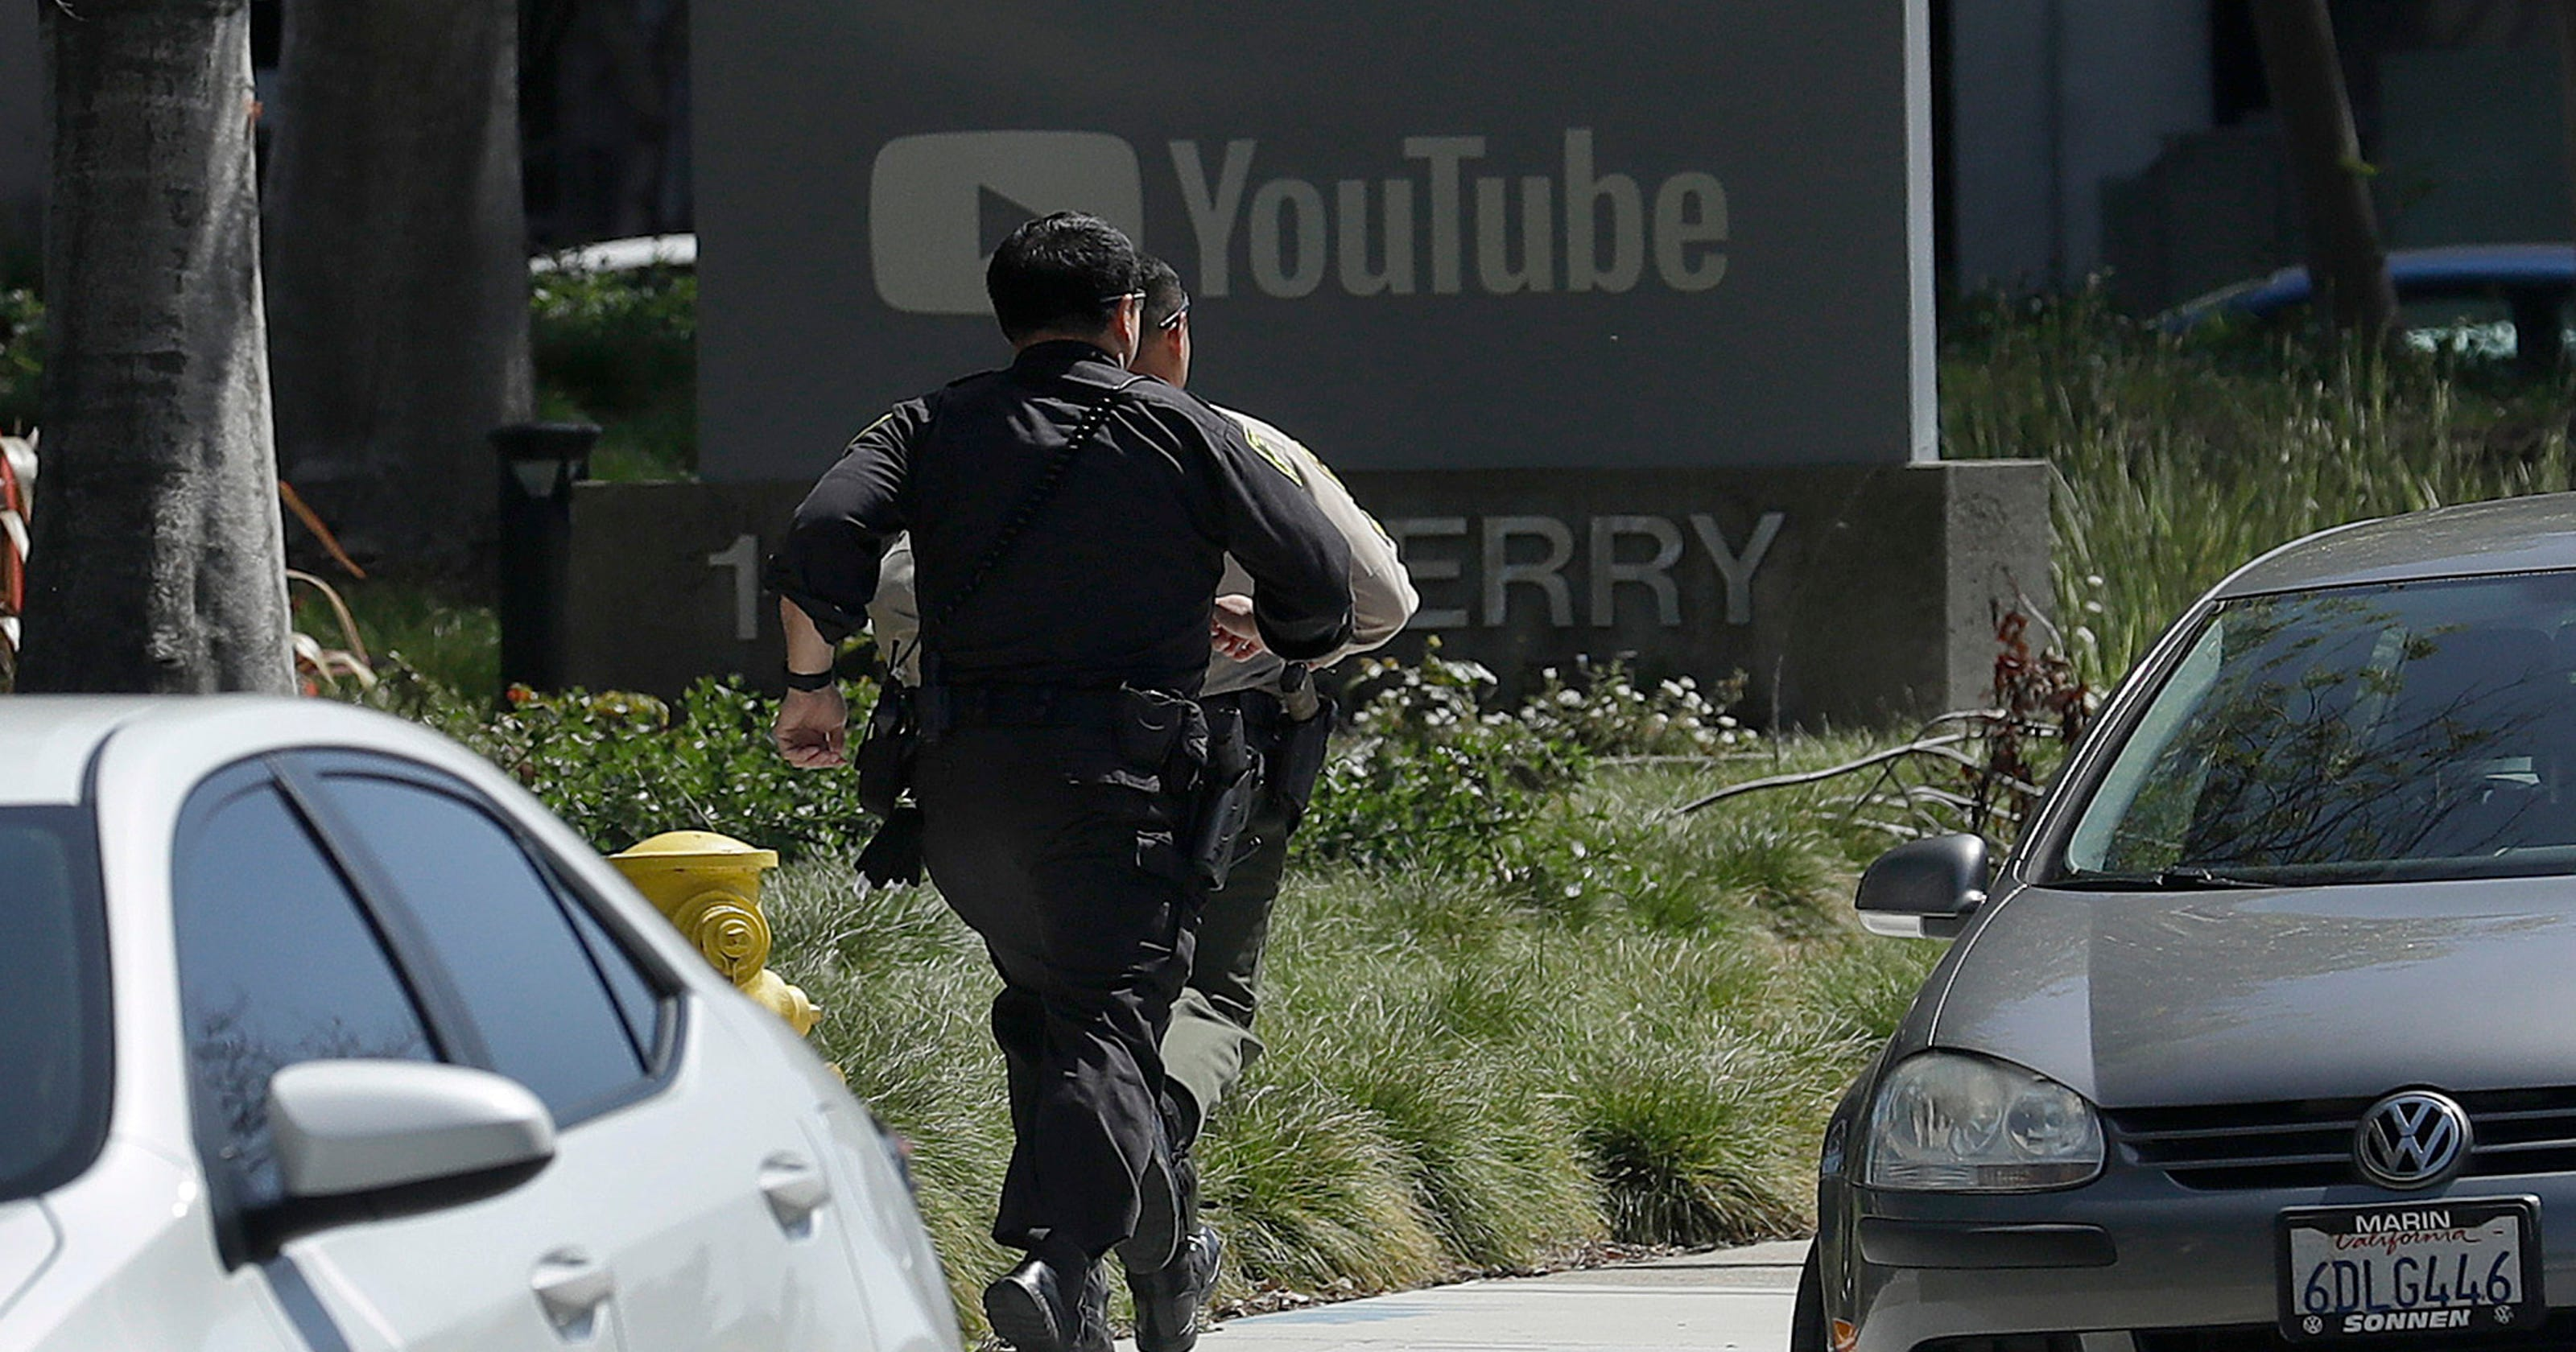 YouTube shooting: Female suspect dead, 3 wounded